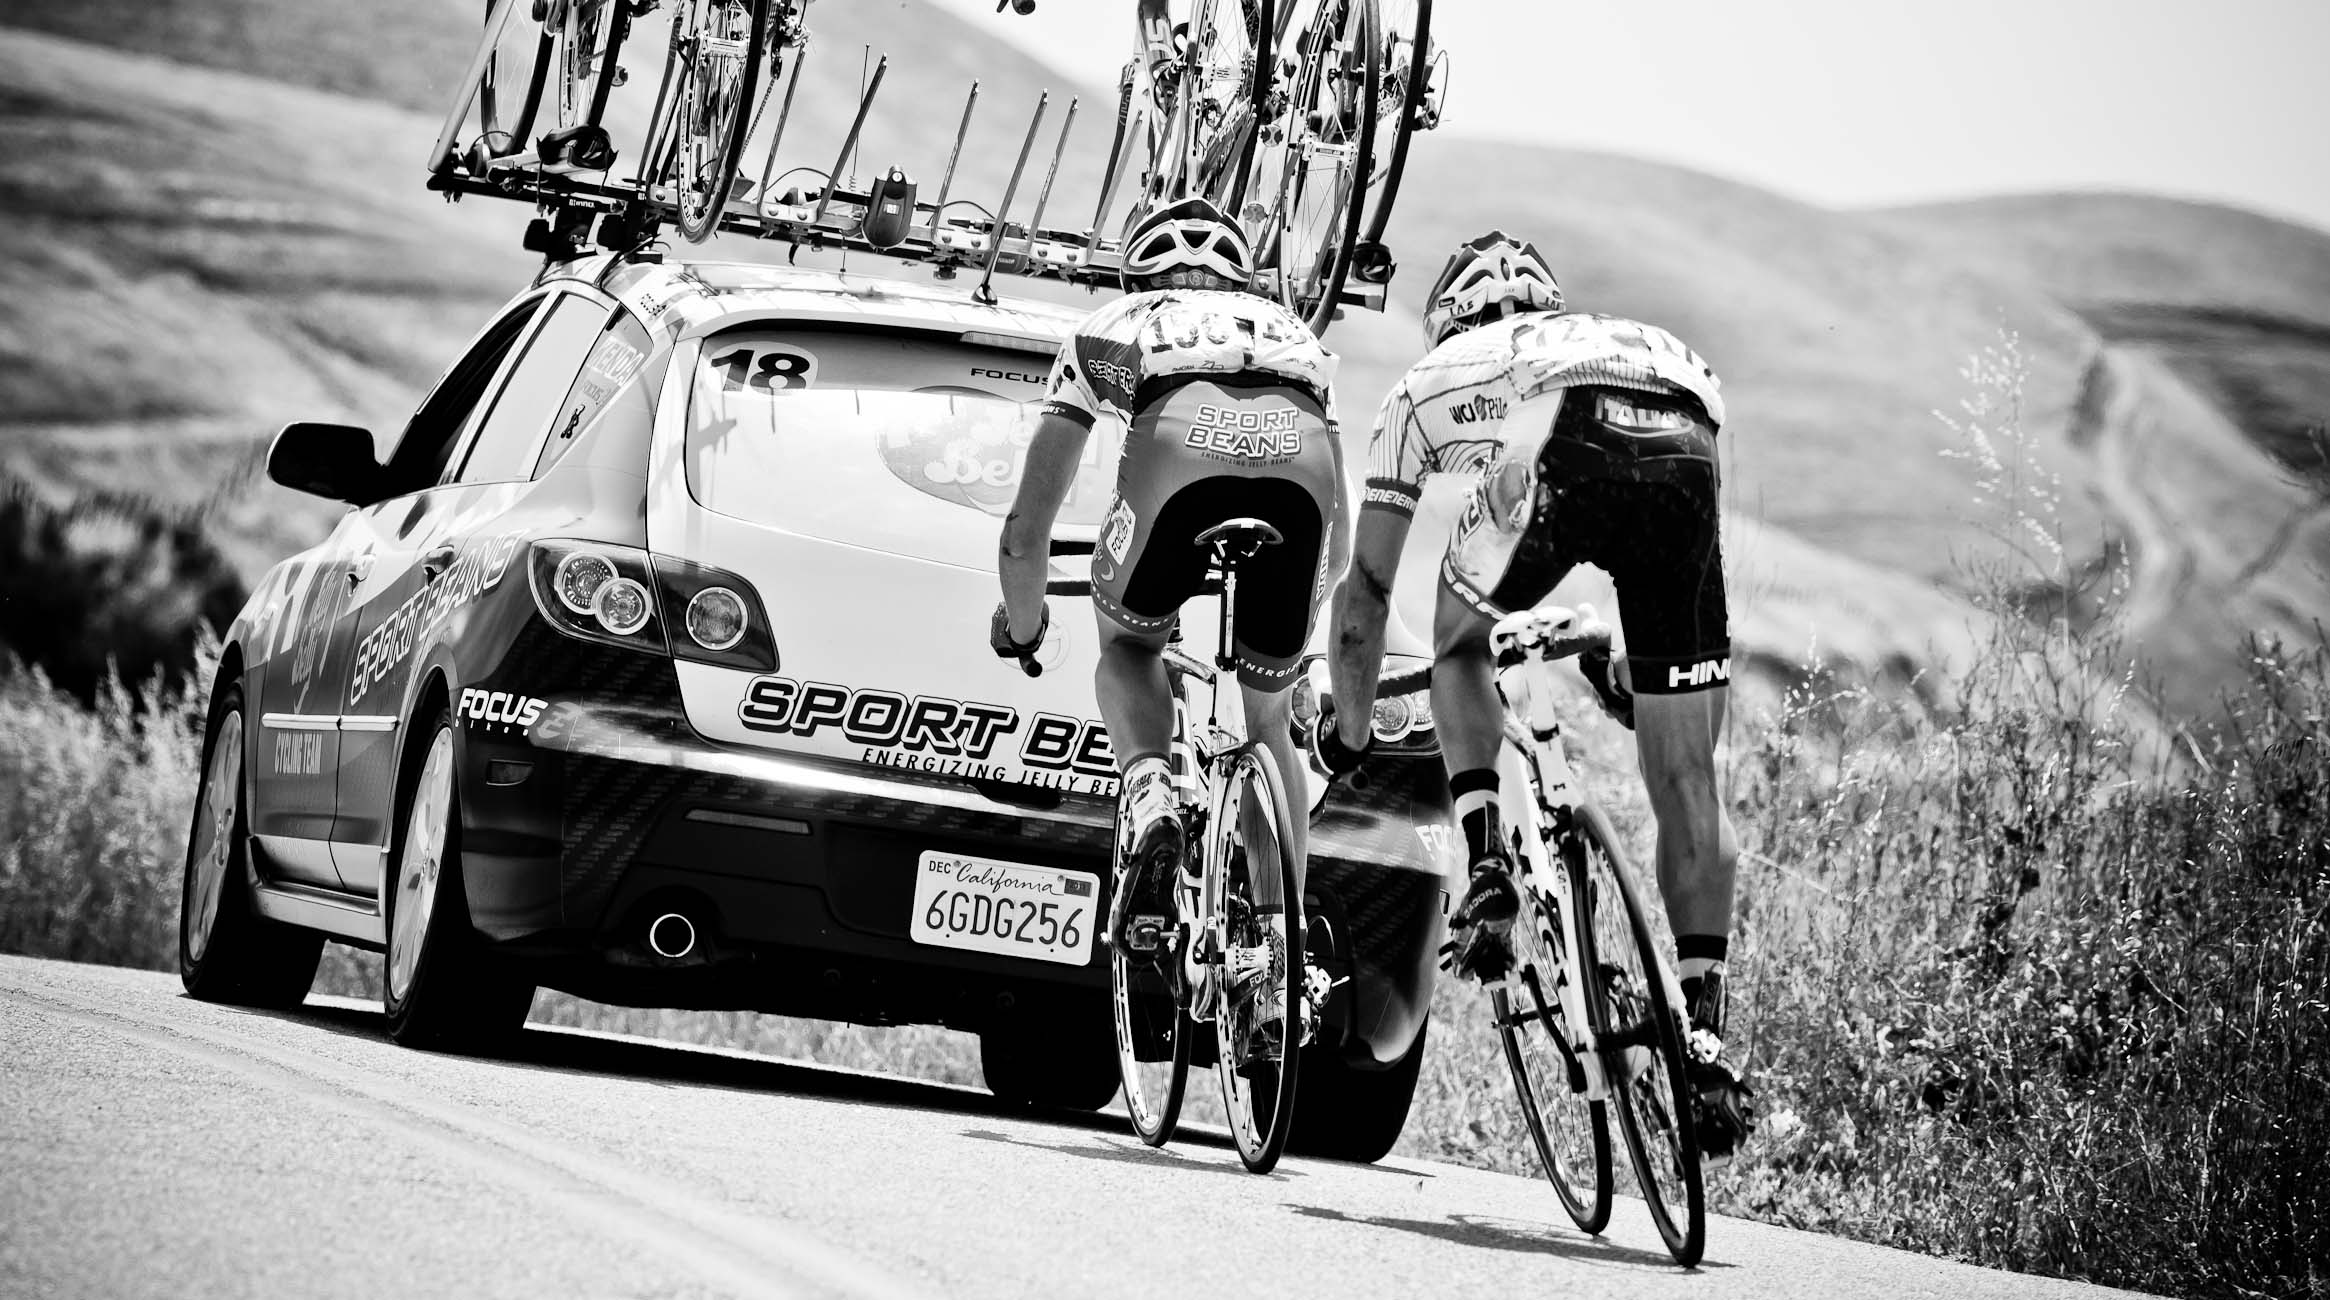 riders tuck behind team car to get back in the race